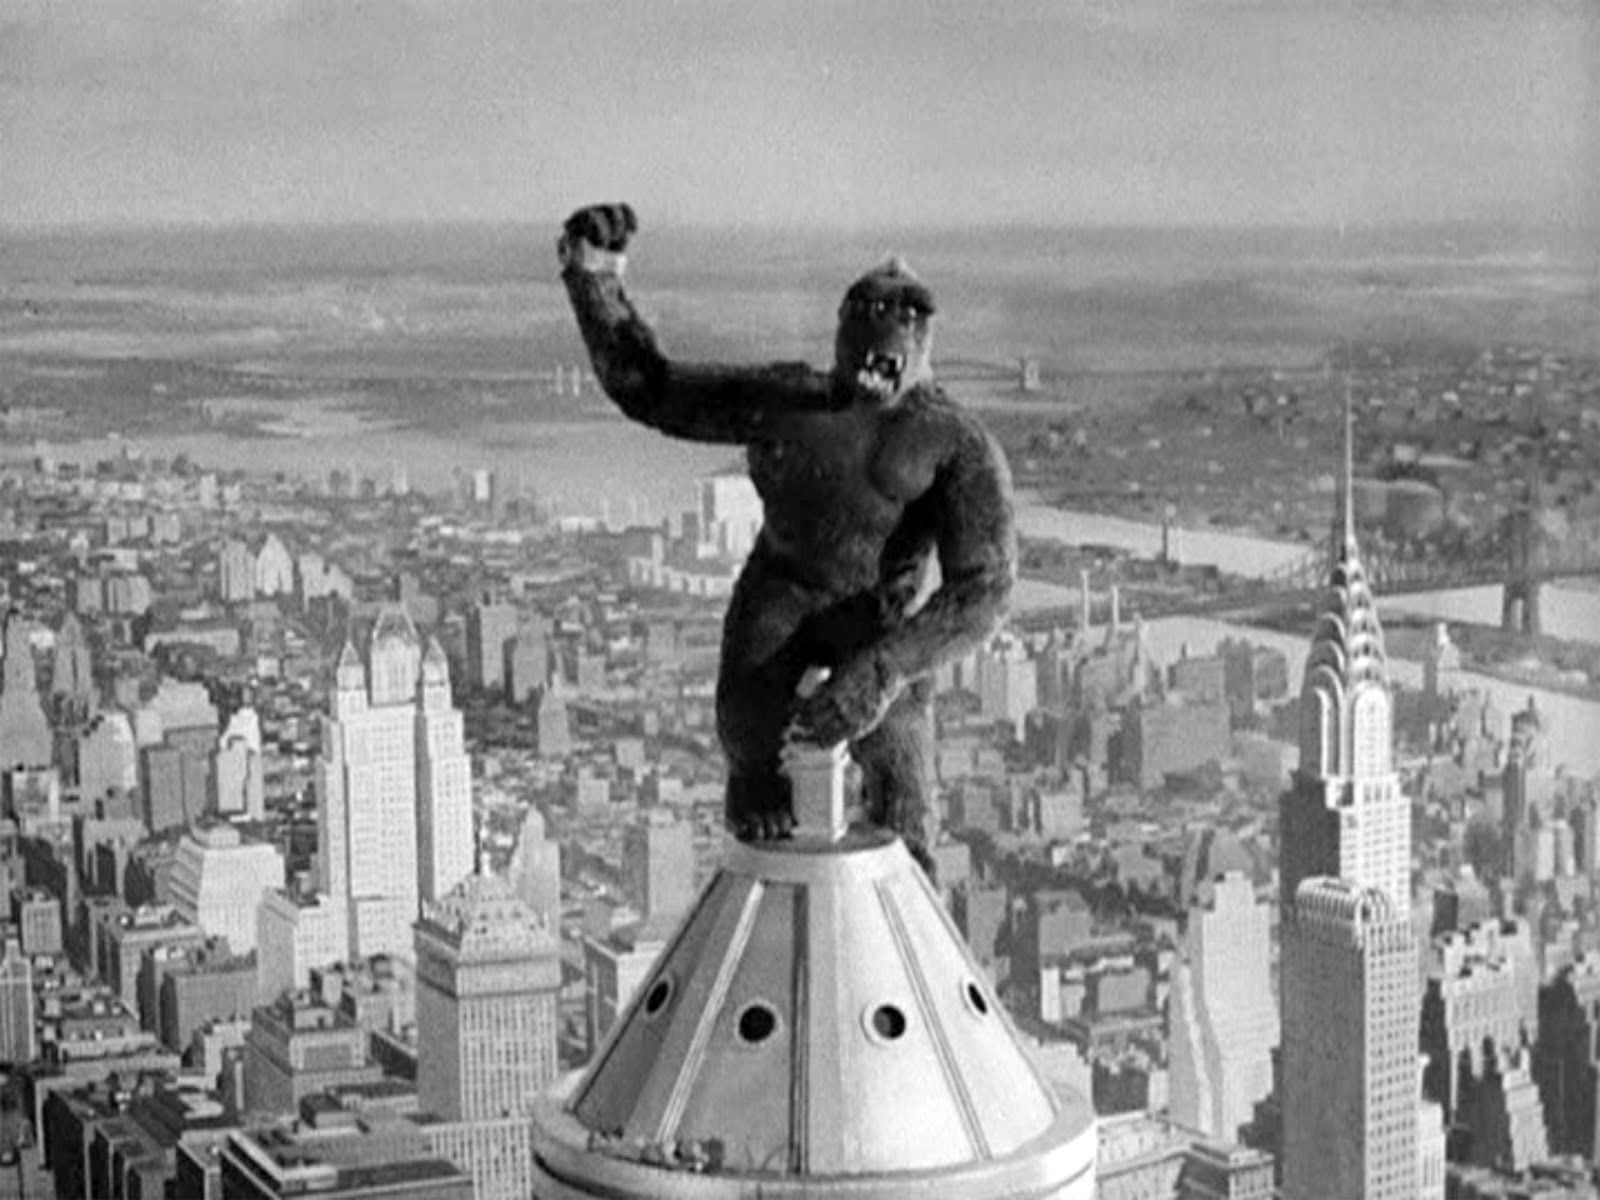 King Kong Empire State Building With Girl | Images Guru King Kong Empire State Building With Girl